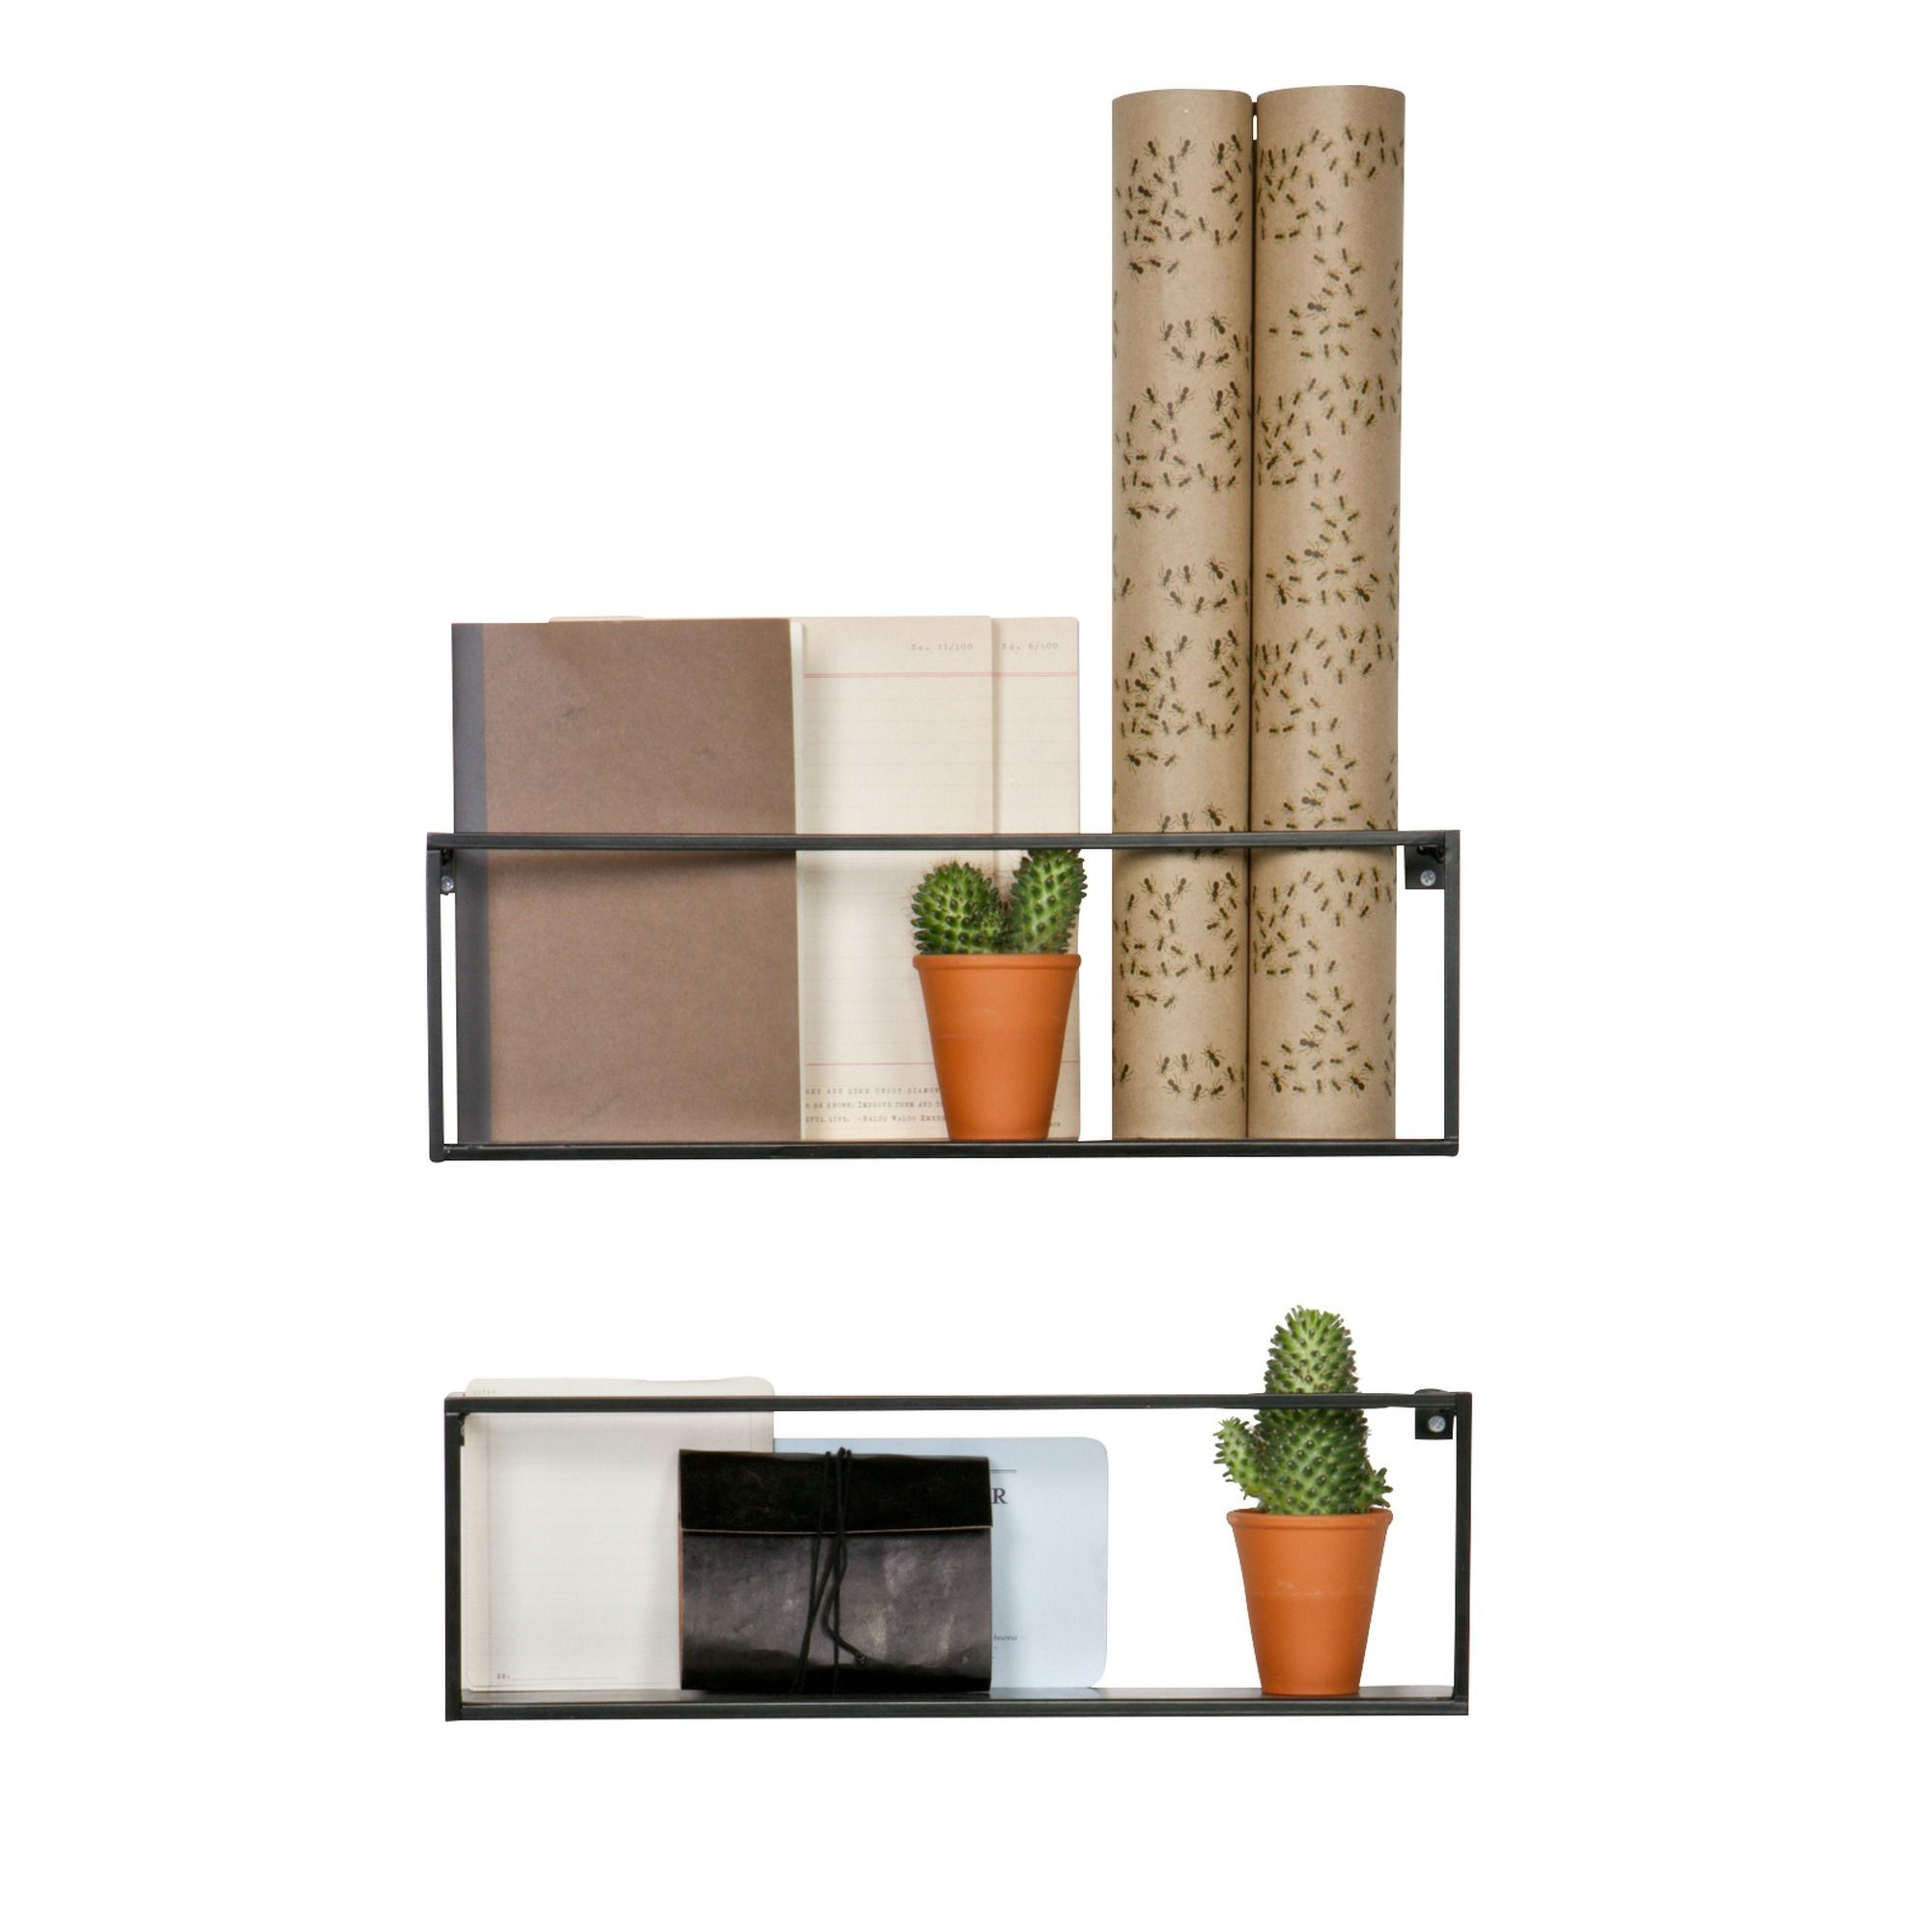 Wandrek Planten Zwarte Metalen Wandrek Meert Van Woood Decoratie Kitchen Wall